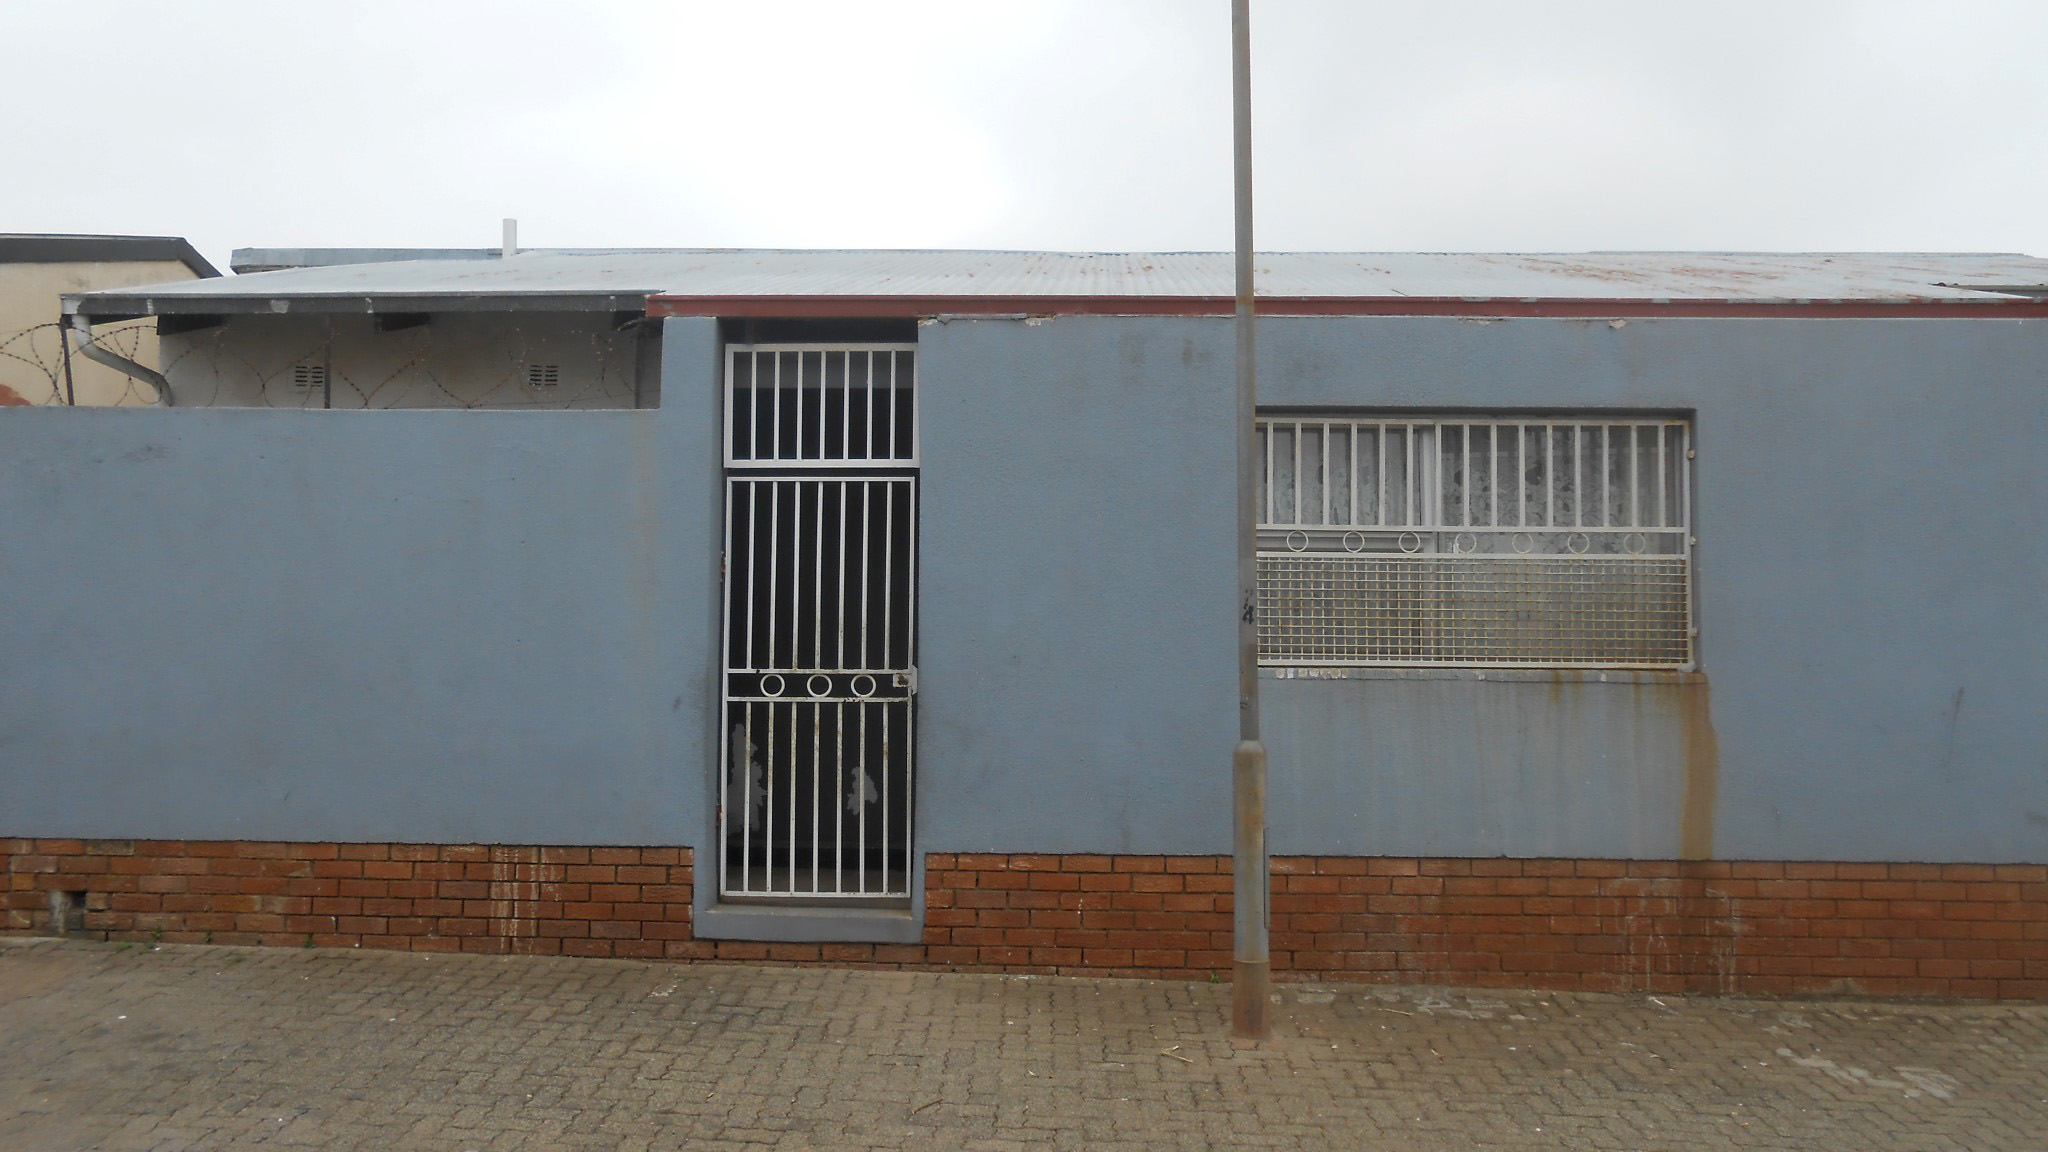 Standard Bank EasySell 3 Bedroom Cluster For Sale in Pageview - MR140904